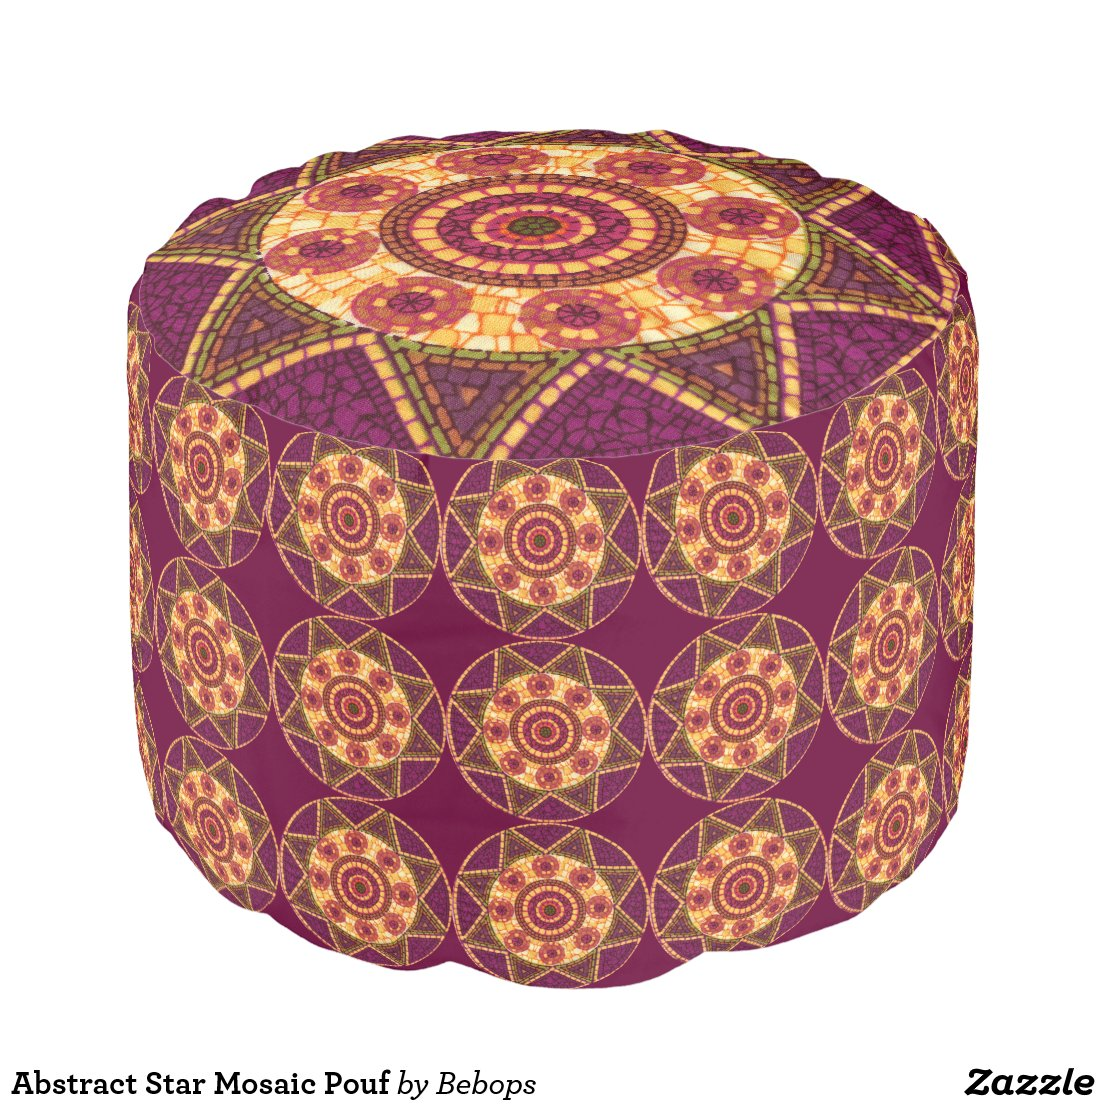 Abstract Star Mosaic Pouf